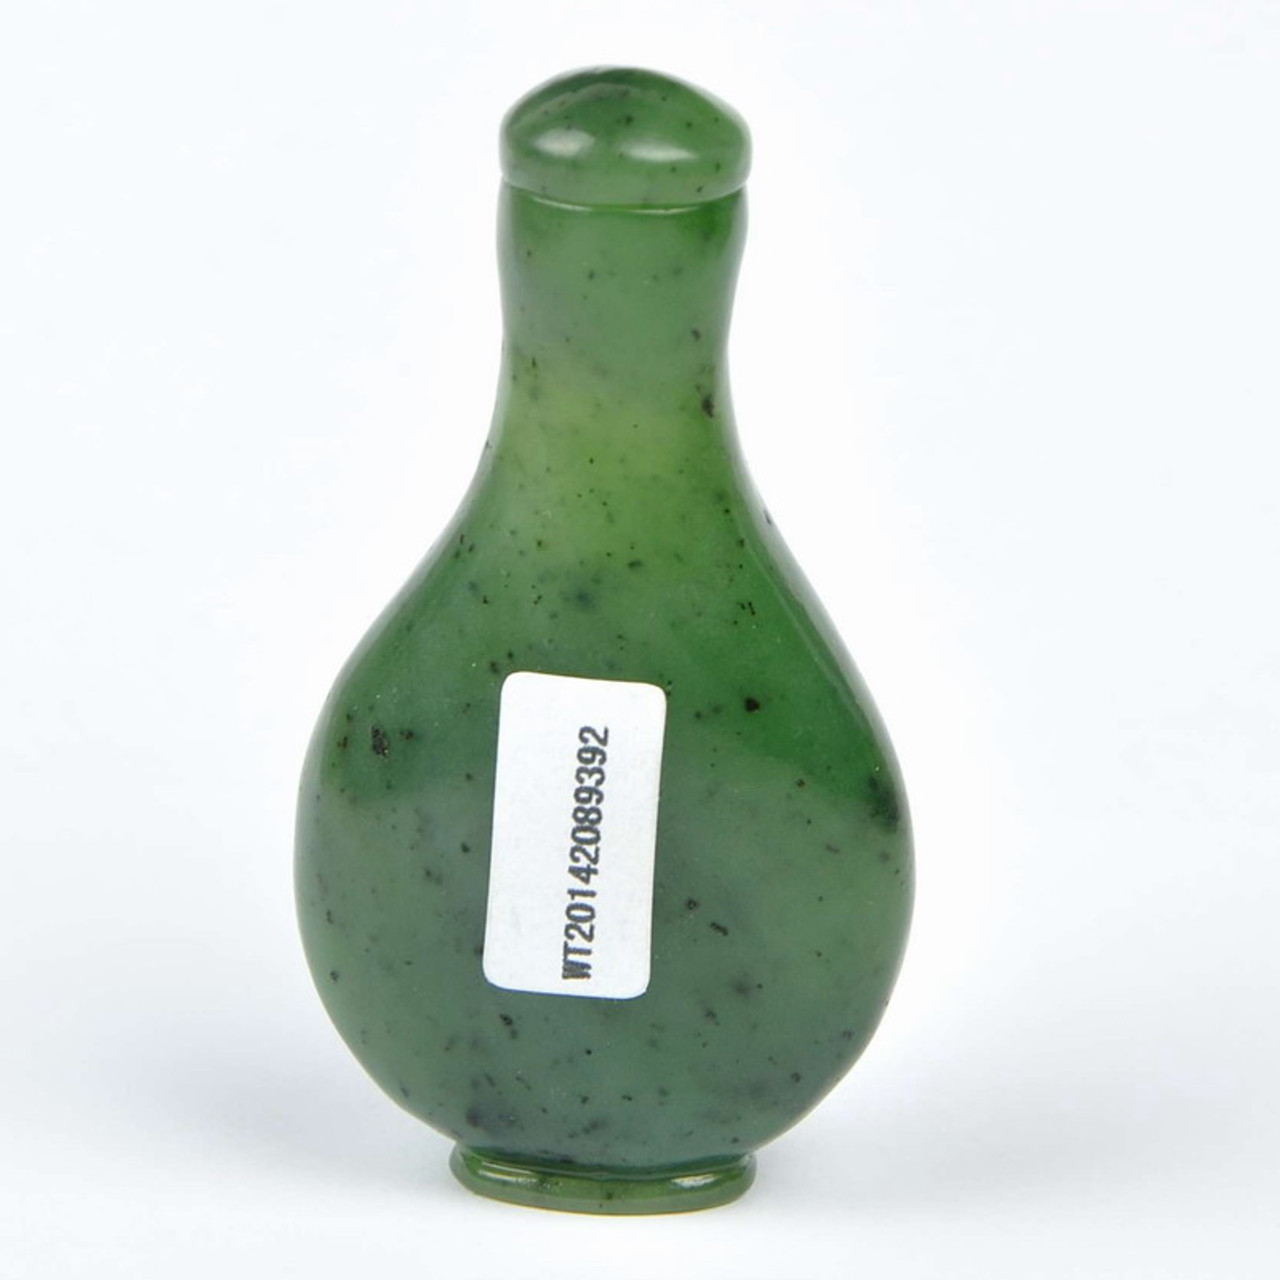 Hand Carved Natural Green Nephrite Jade Snuff Bottle  w/ certificate